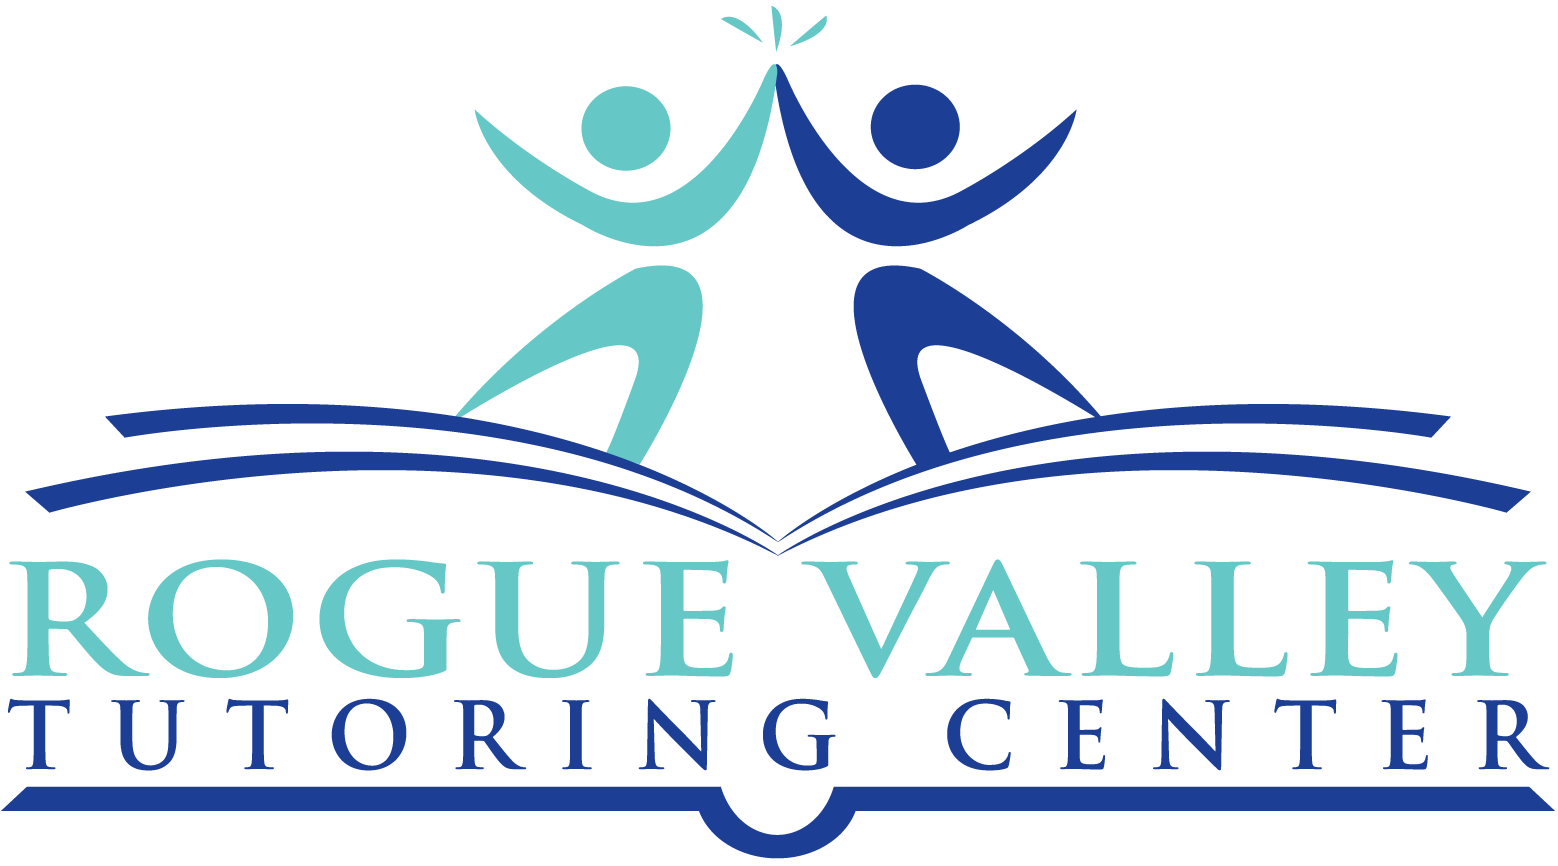 Rogue Valley Tutoring Center